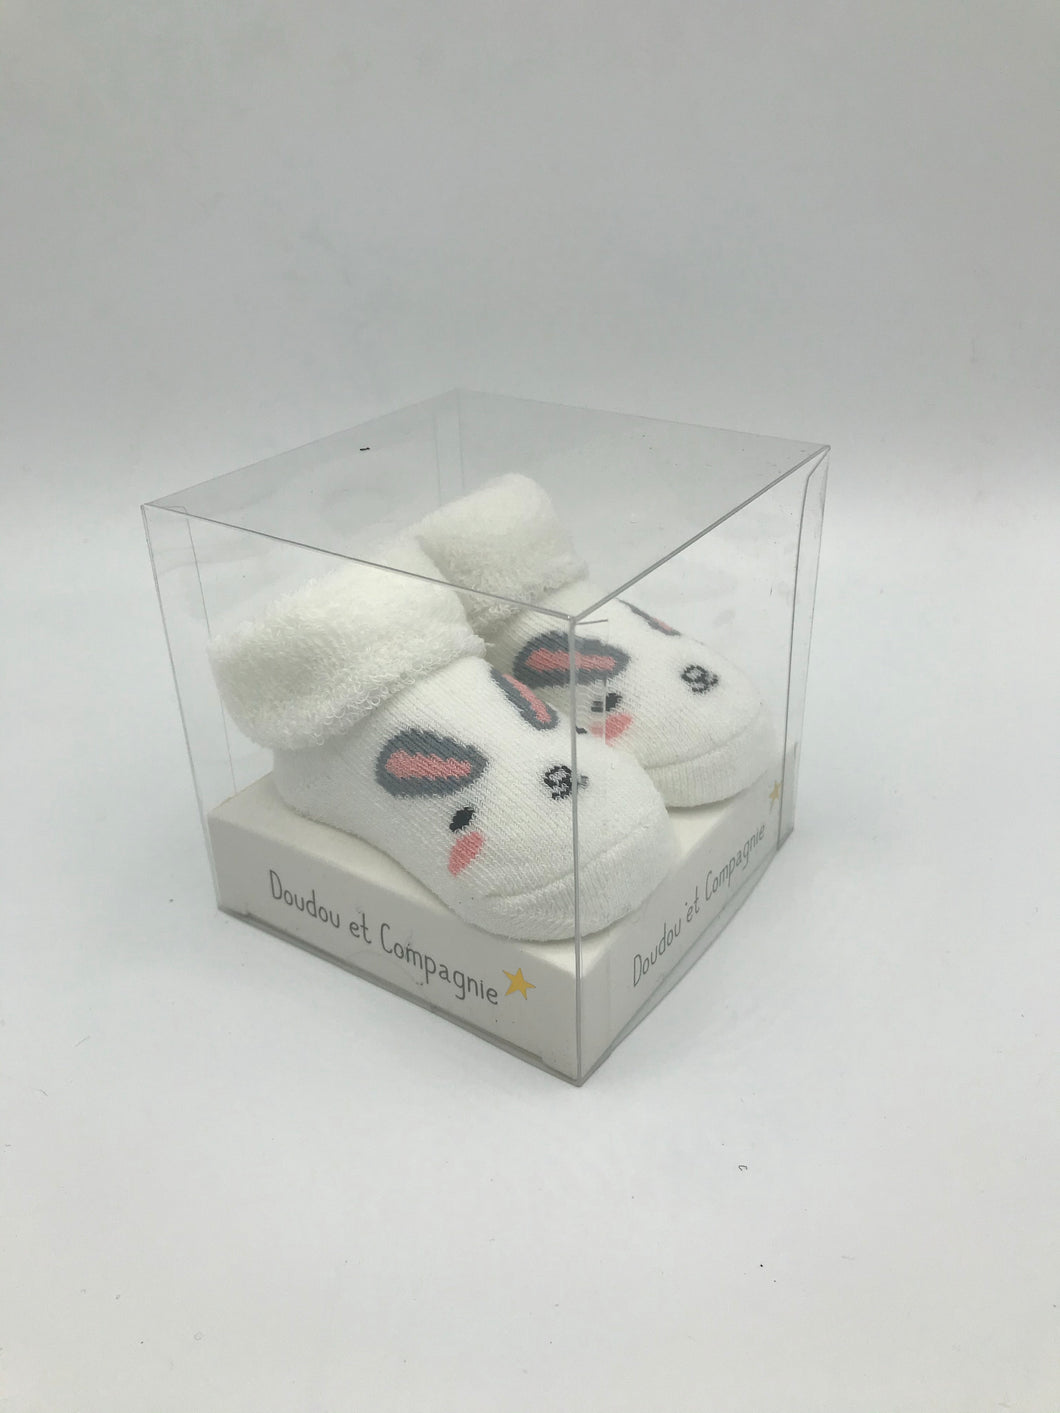 Doudou et Campagnie White Rabbit socks